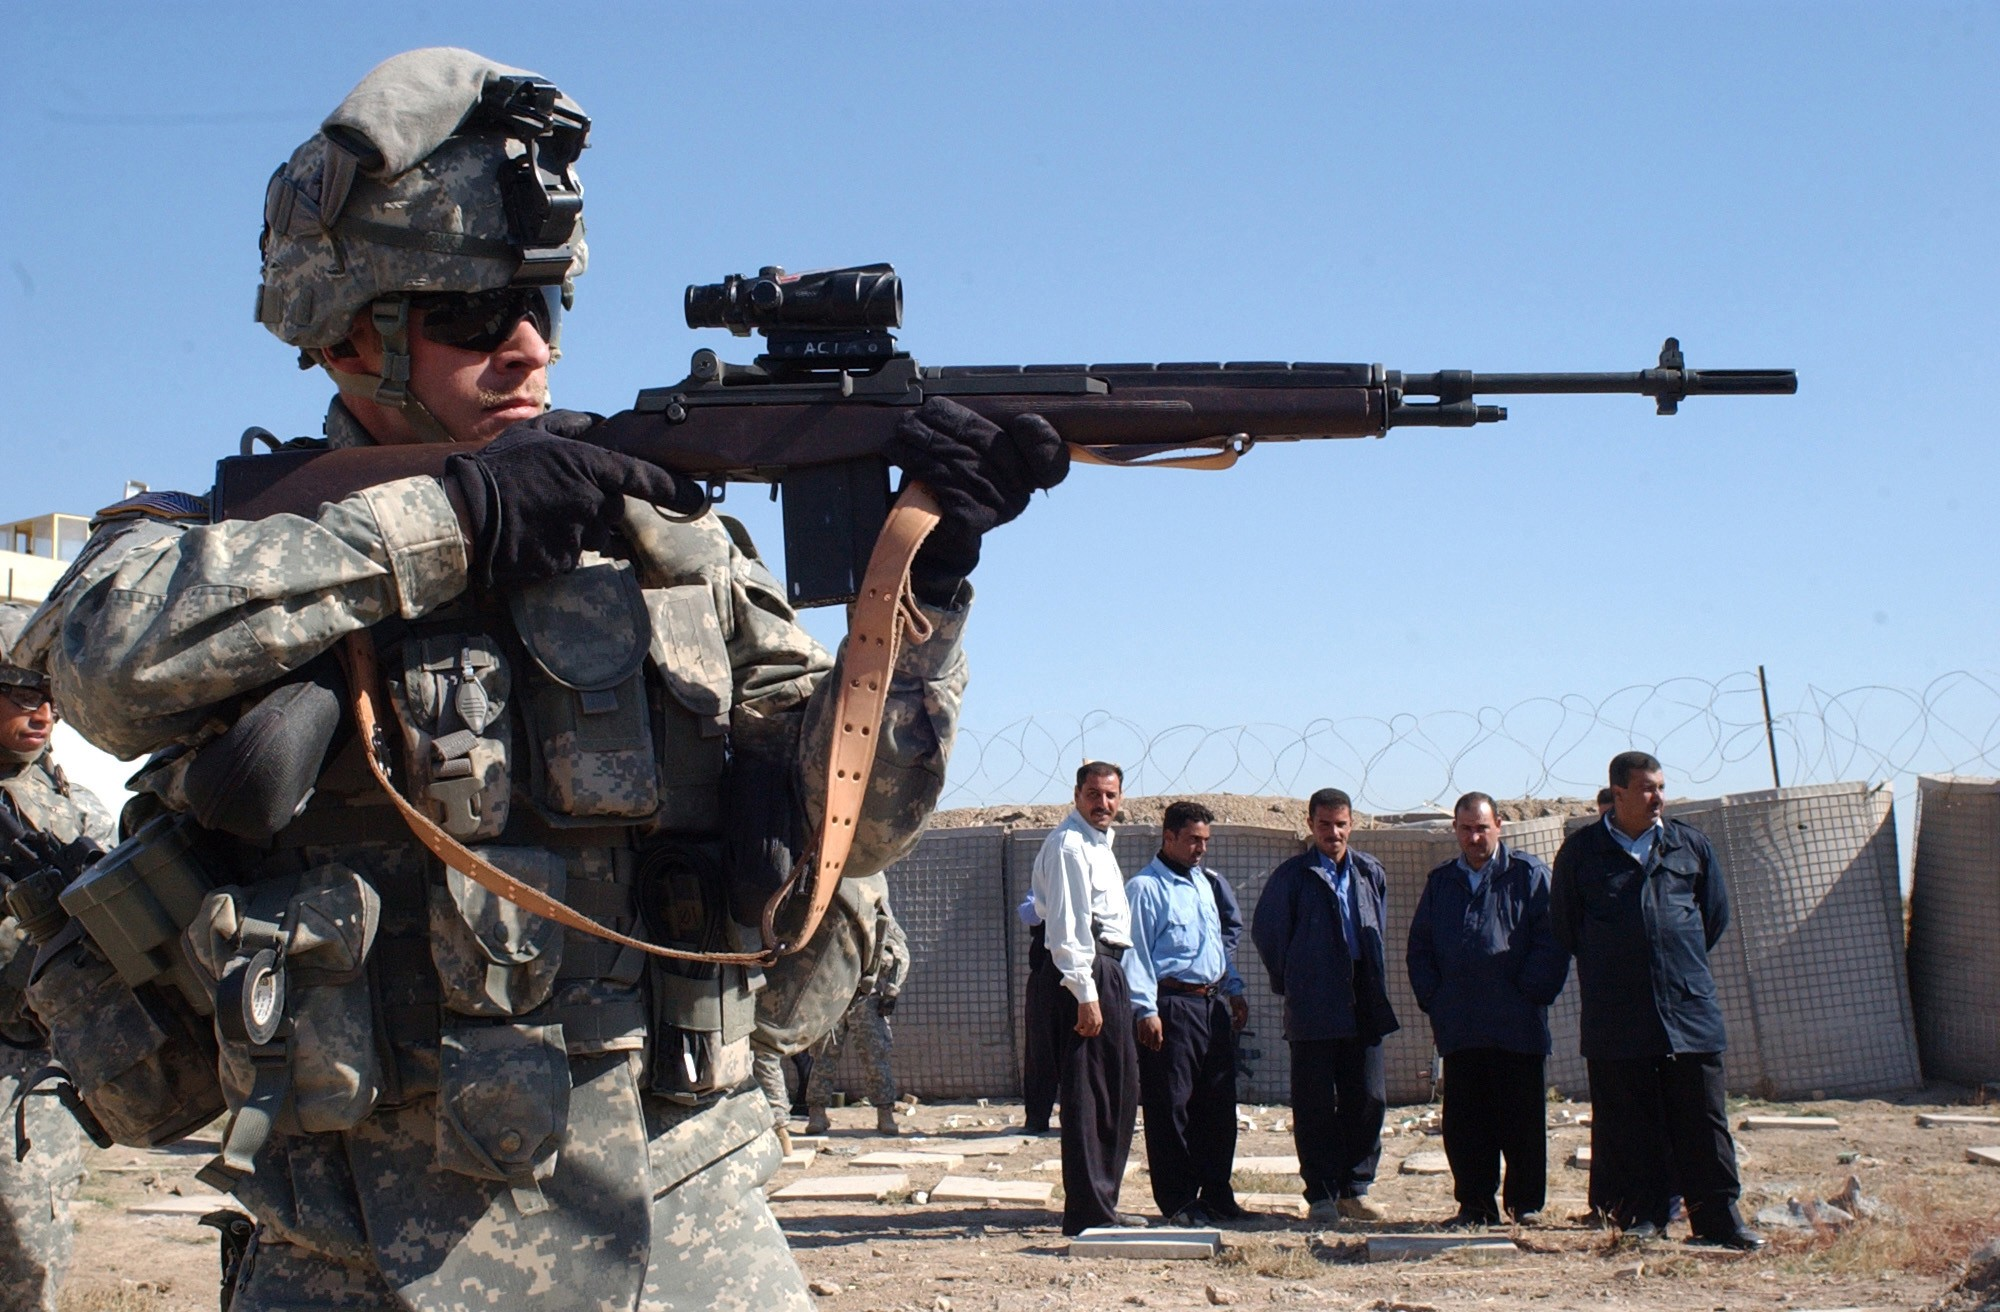 The Rise and Fall and Rise of America's Last Battle Rifle